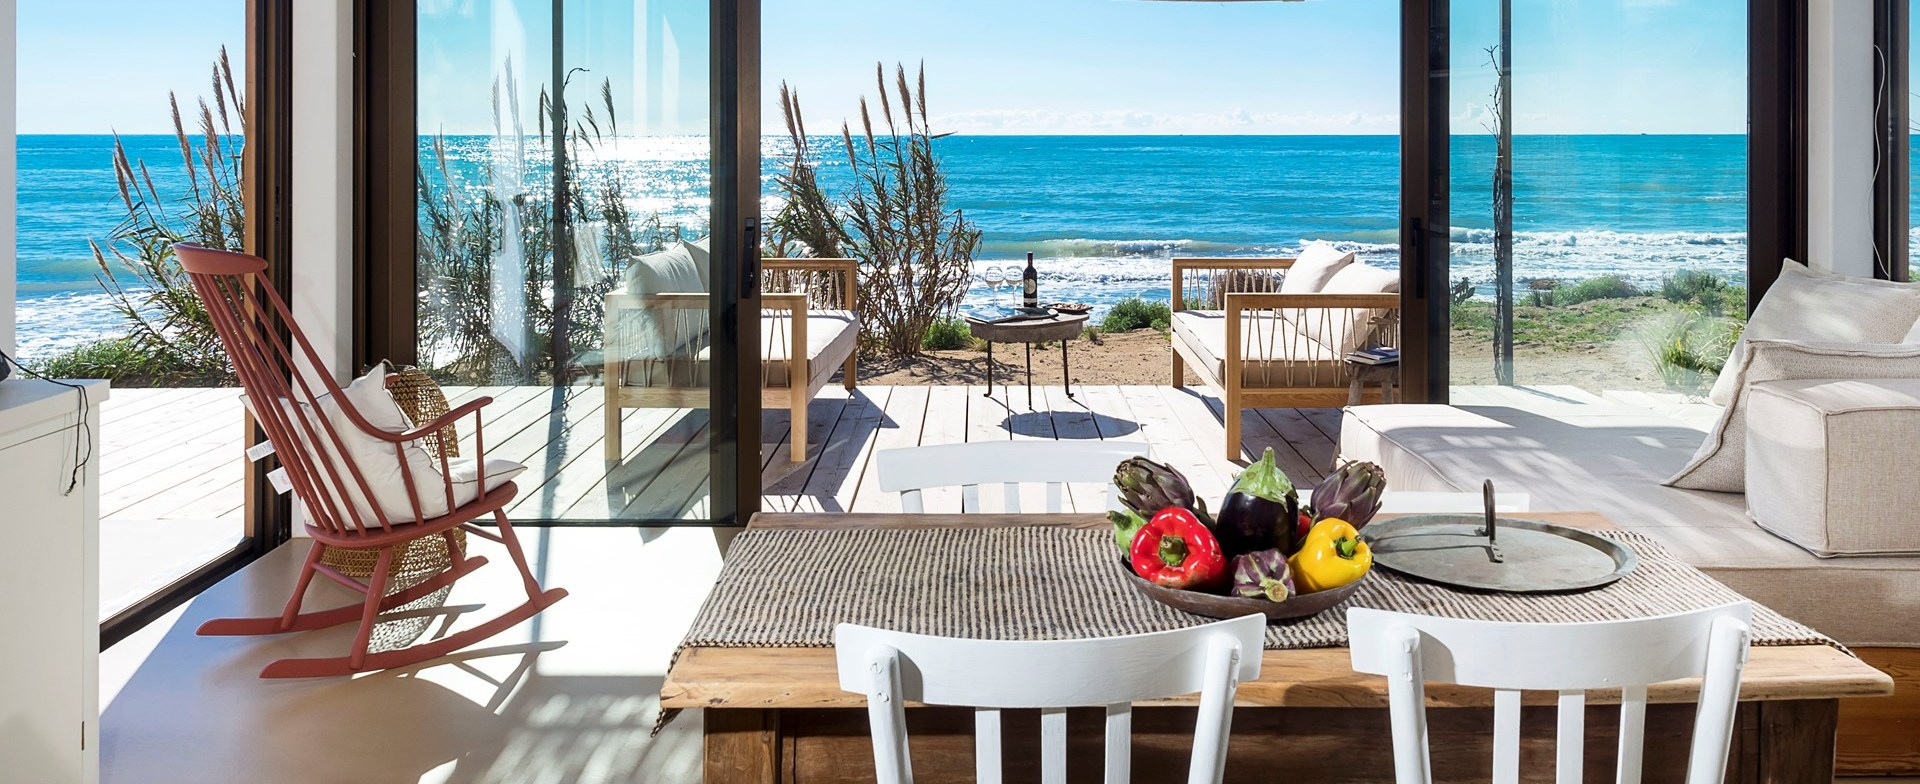 sea-view-dining-sicily